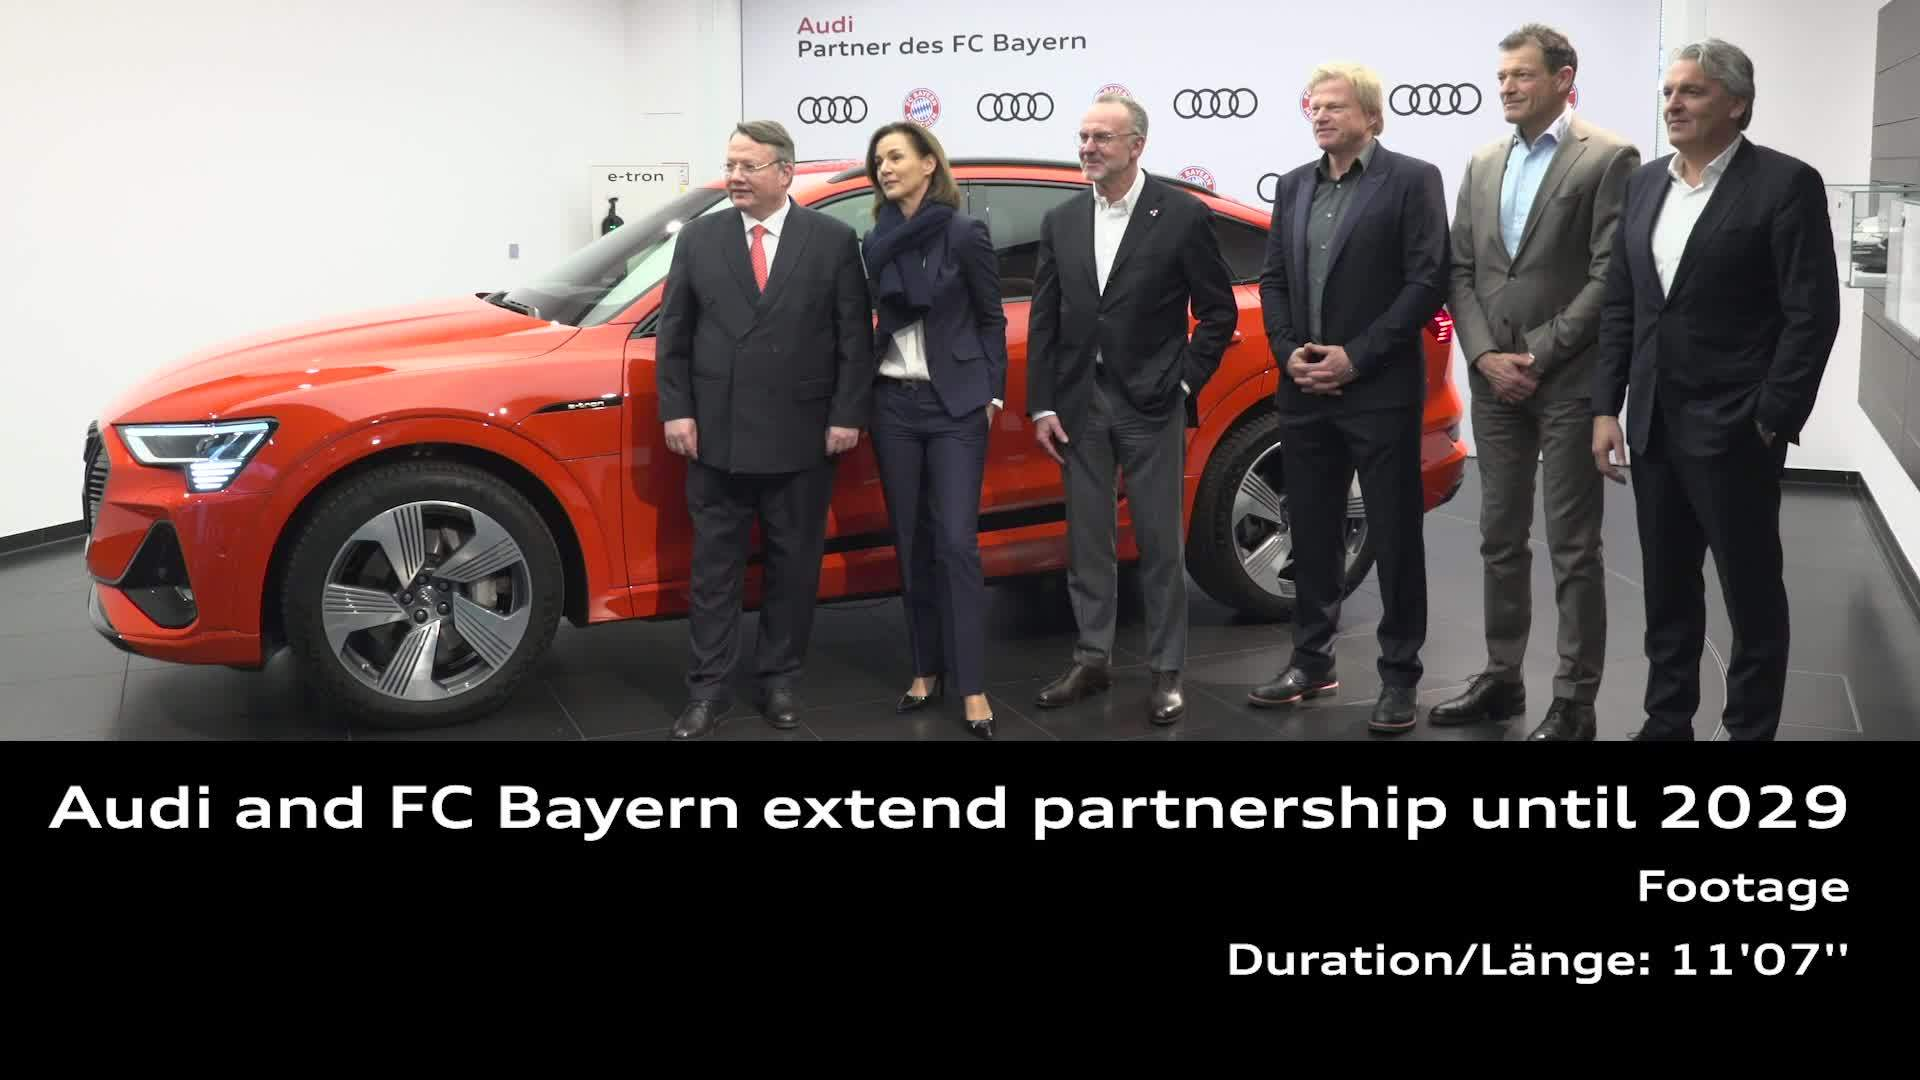 Extended partnership with the FC Bayern until 2029 (Footage)